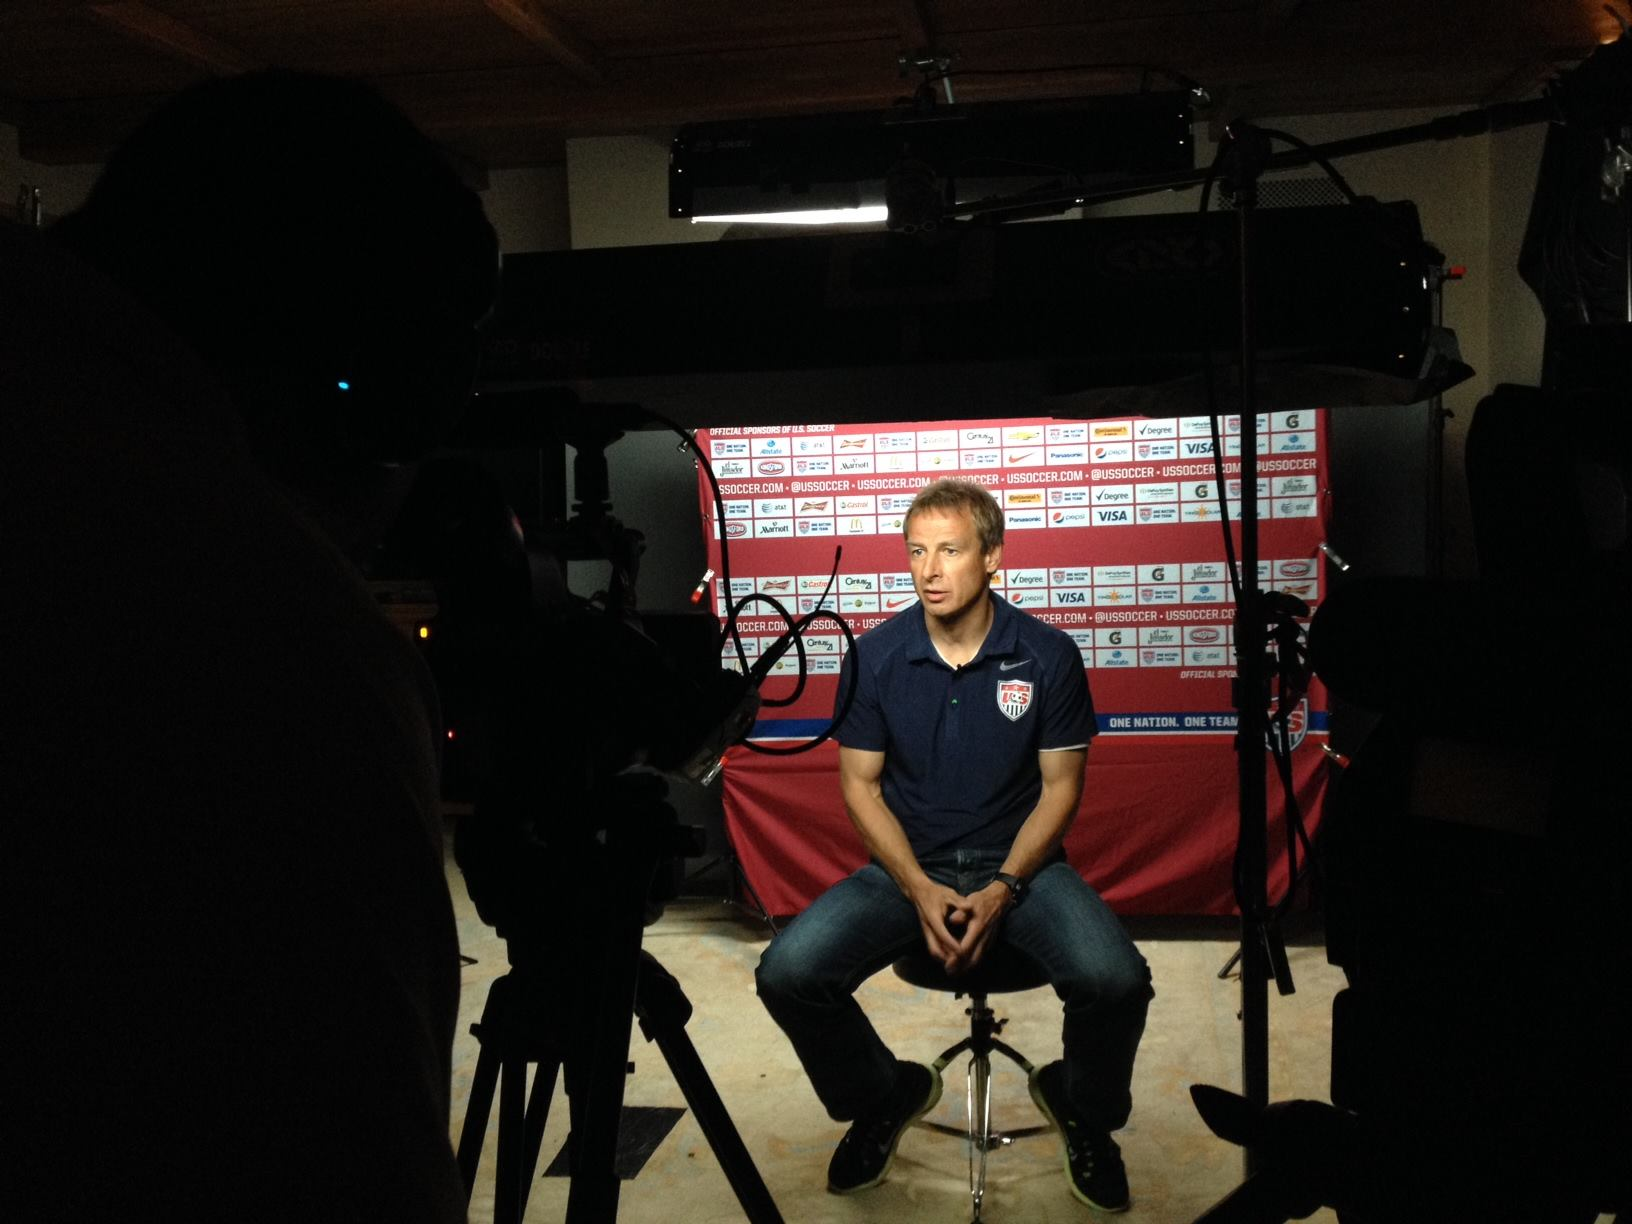 US National Soccer Team Head Coach Jurgen Klinsnmann on the set of  The Game 365.